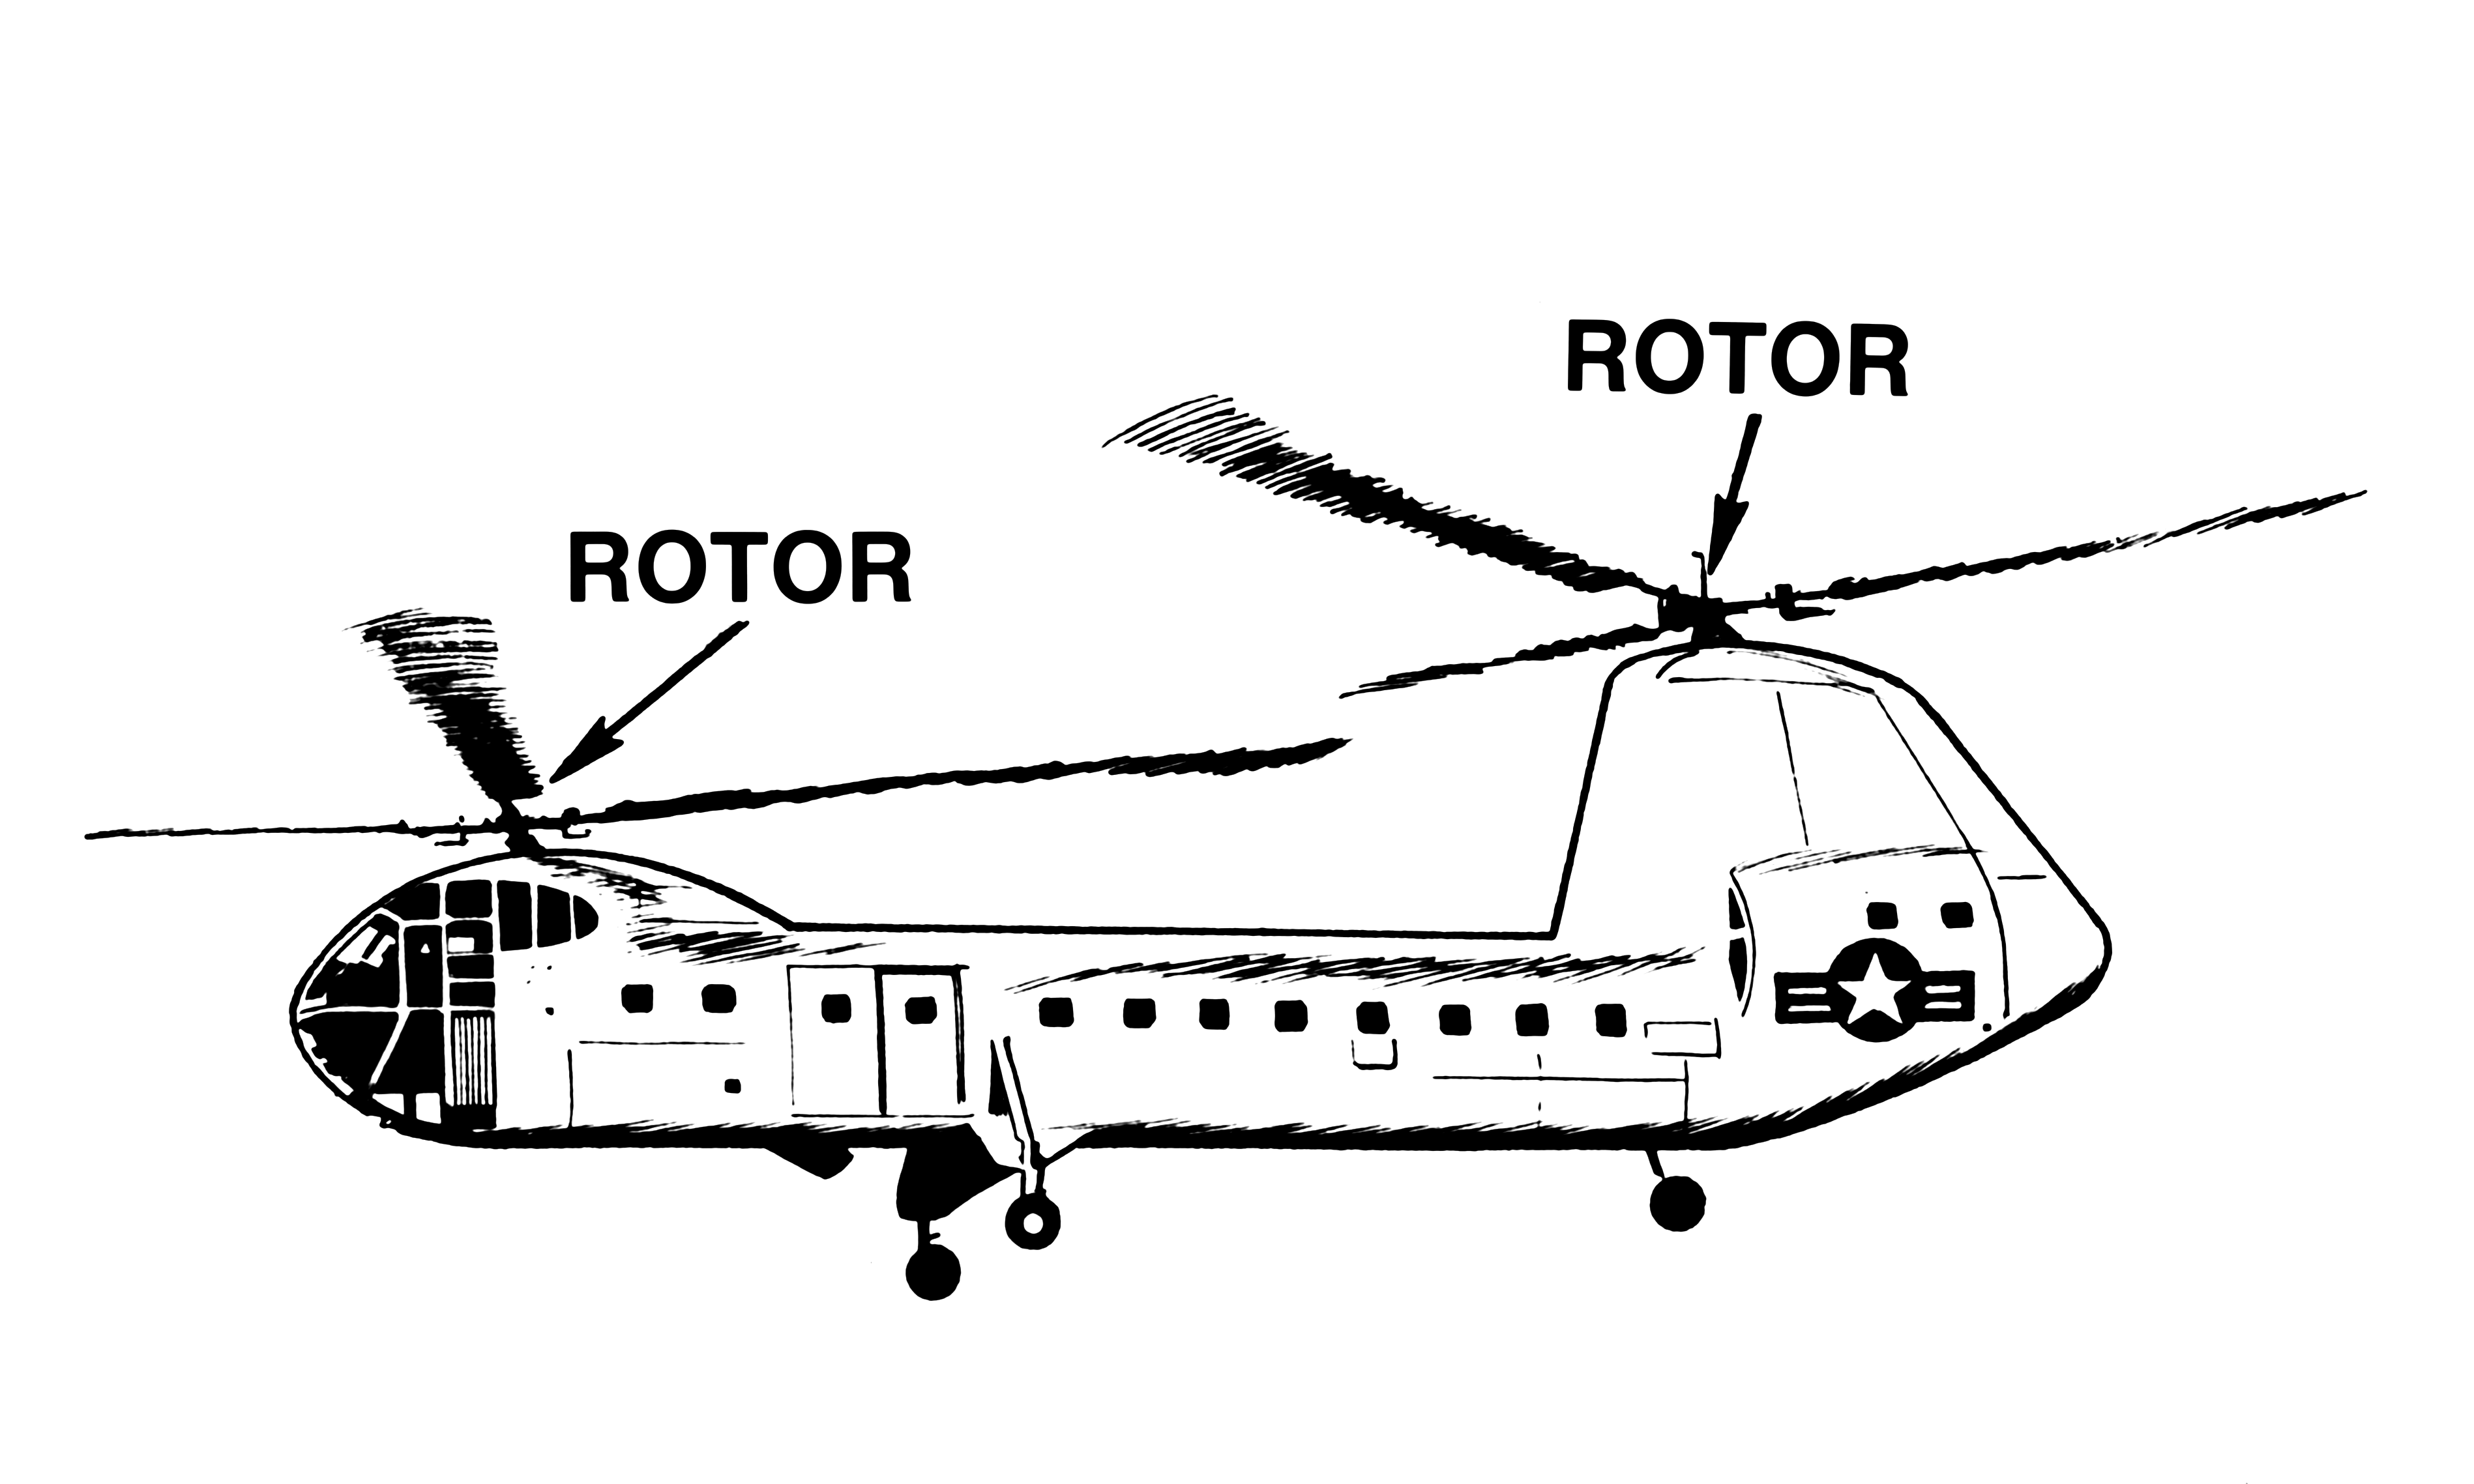 helicopter colouring pages with File Scottforesman Helicopter Drawing on Robocar Poli Coloring Pages together with Download Dji Phantom 4 User Manual likewise Sikorsky MH 60S Knighthawk 430364241 likewise Robocar Poli Coloring Pages as well File ScottForesman helicopter drawing.